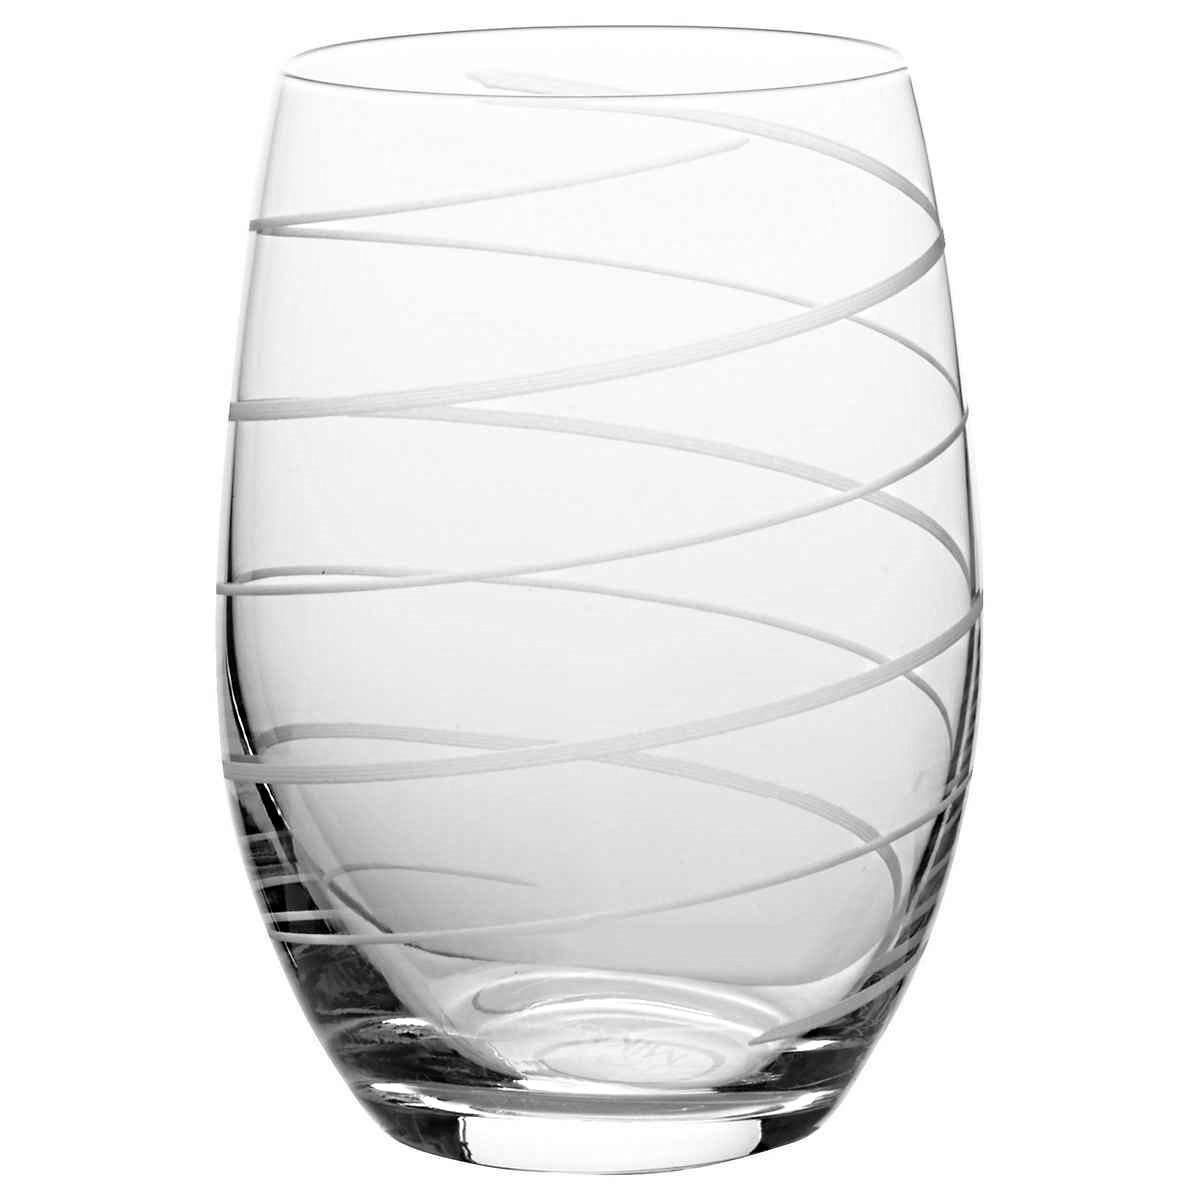 Mikasa Cheers Stemless Etched Wine Glasses, Fine European Lead-Free Crystal, 17-Ounces for Red or White Wine - Set of 6 by Mikasa (Image #8)